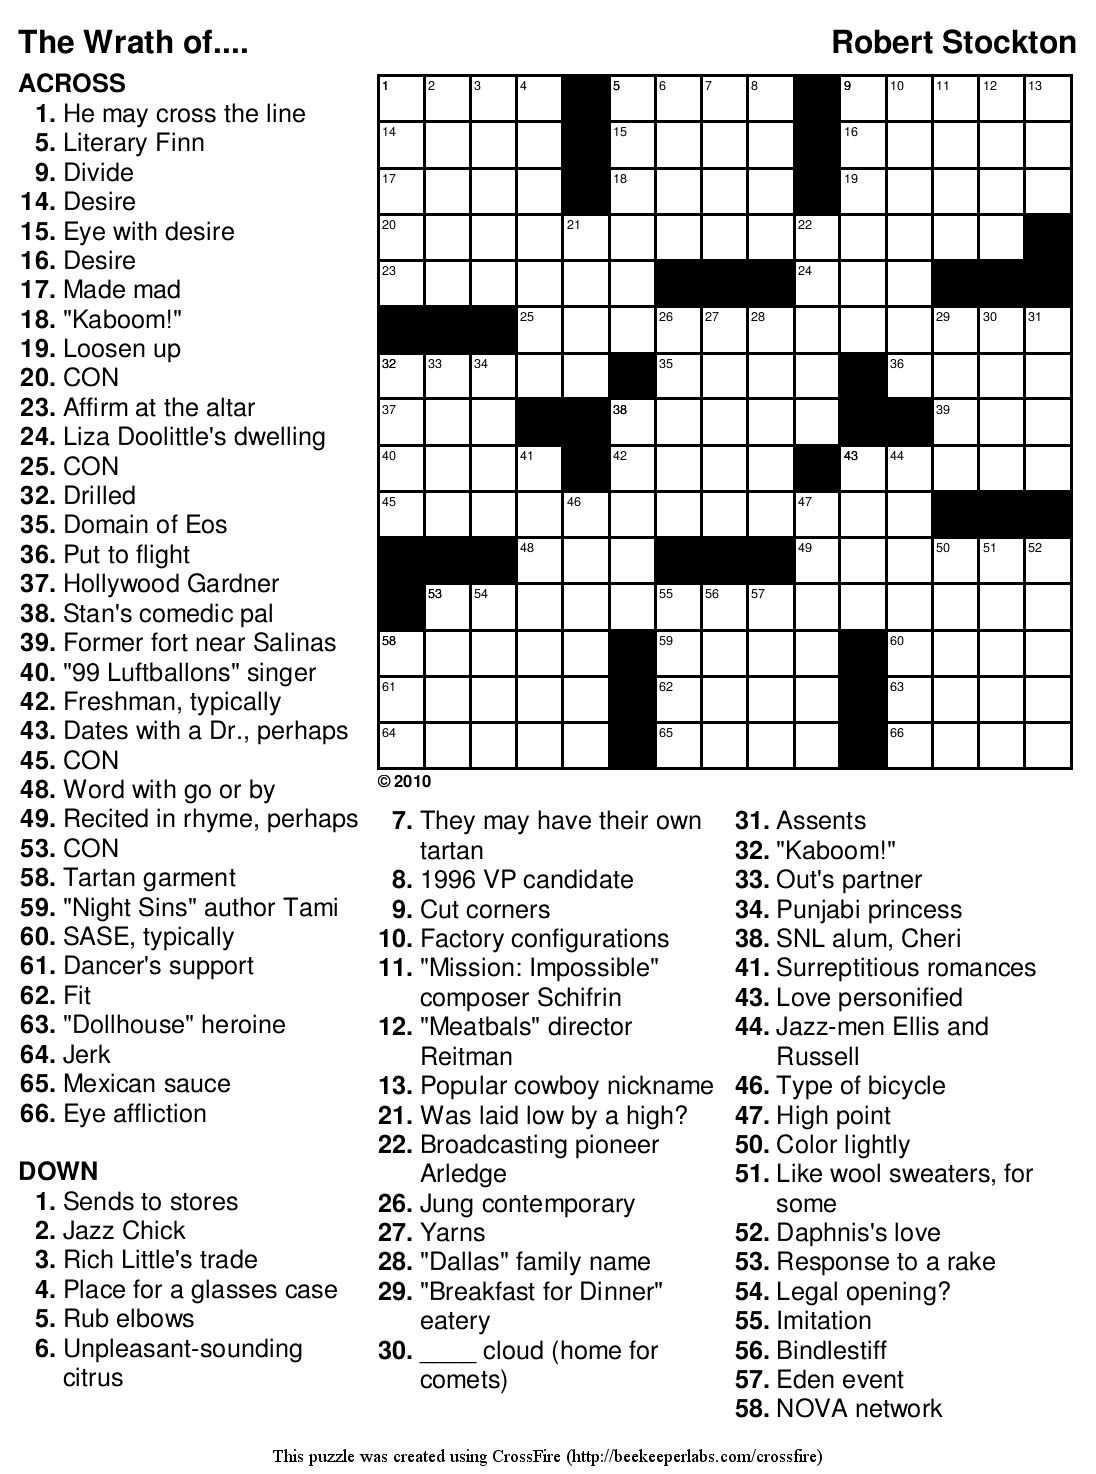 Printable Crossword Puzzles Robert Stockton